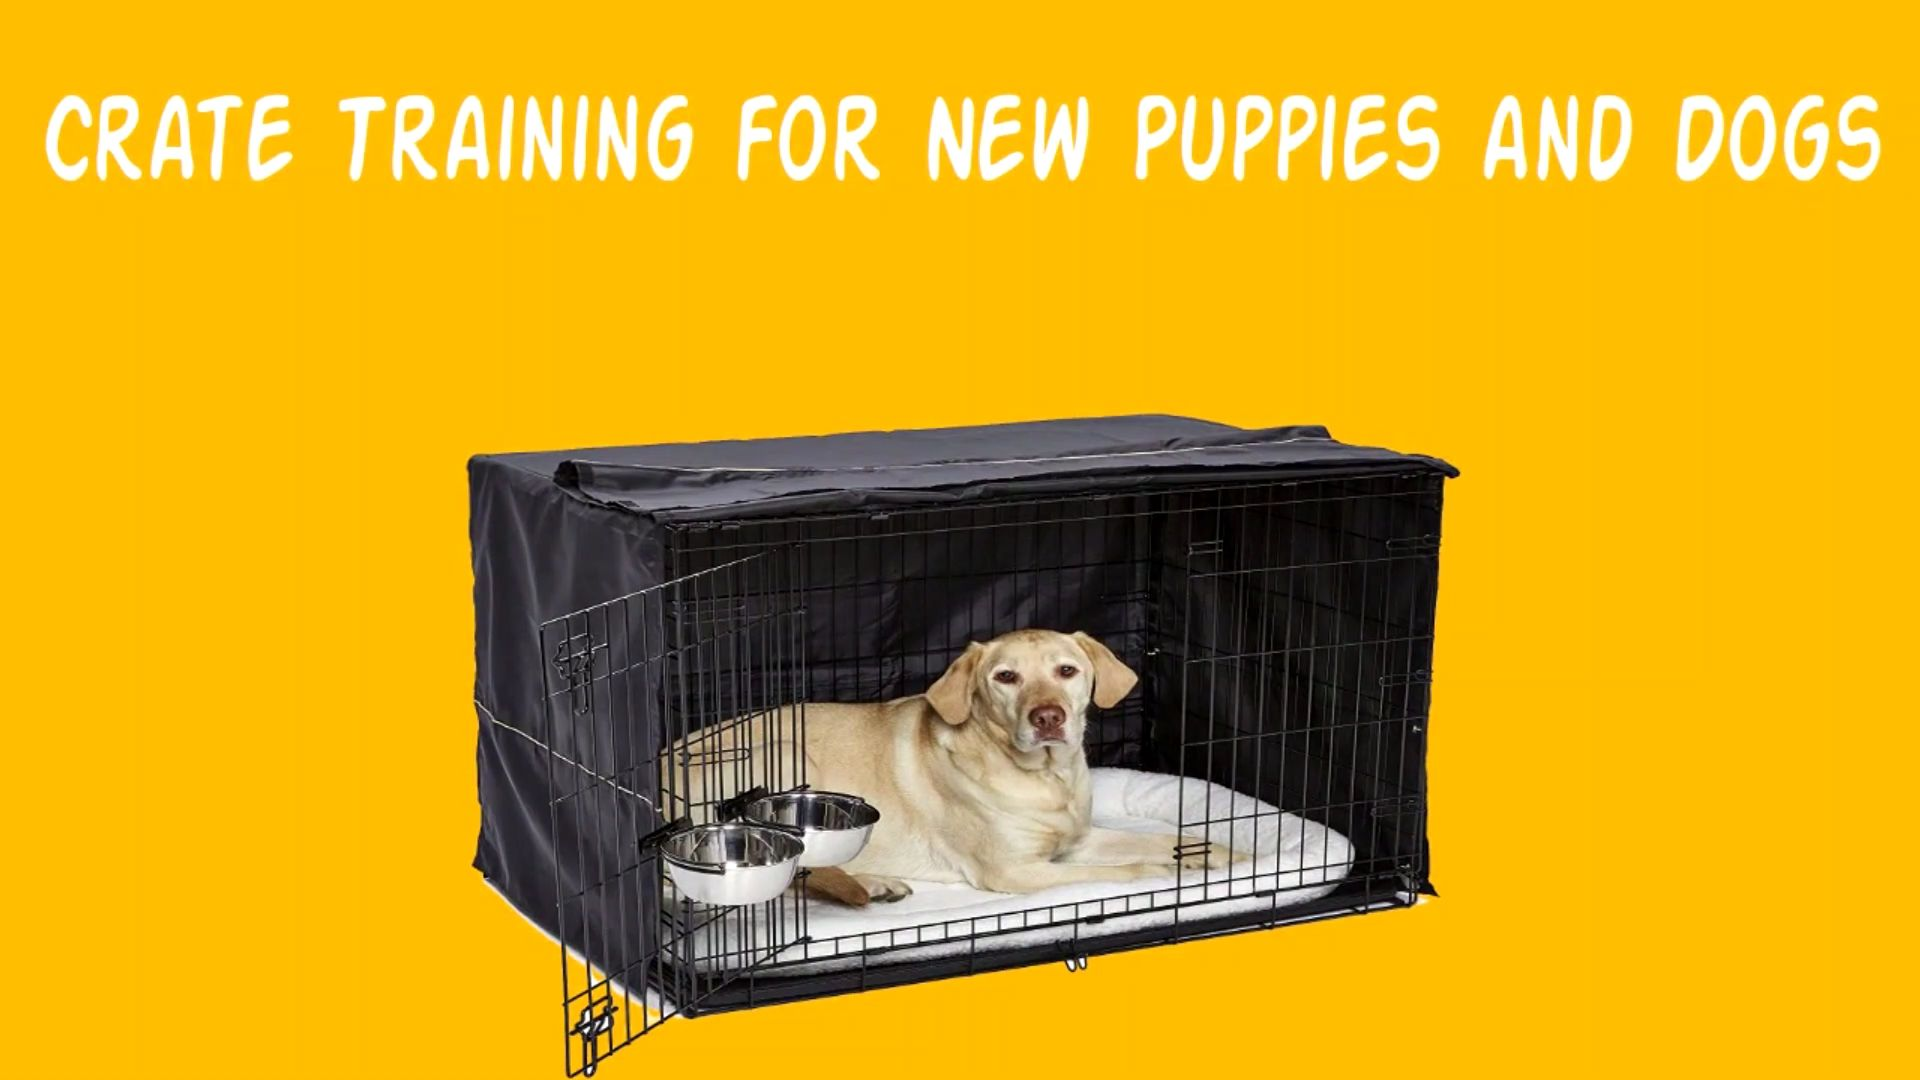 Crate Dog Training Tips Crate Training For New Puppies And Dogs